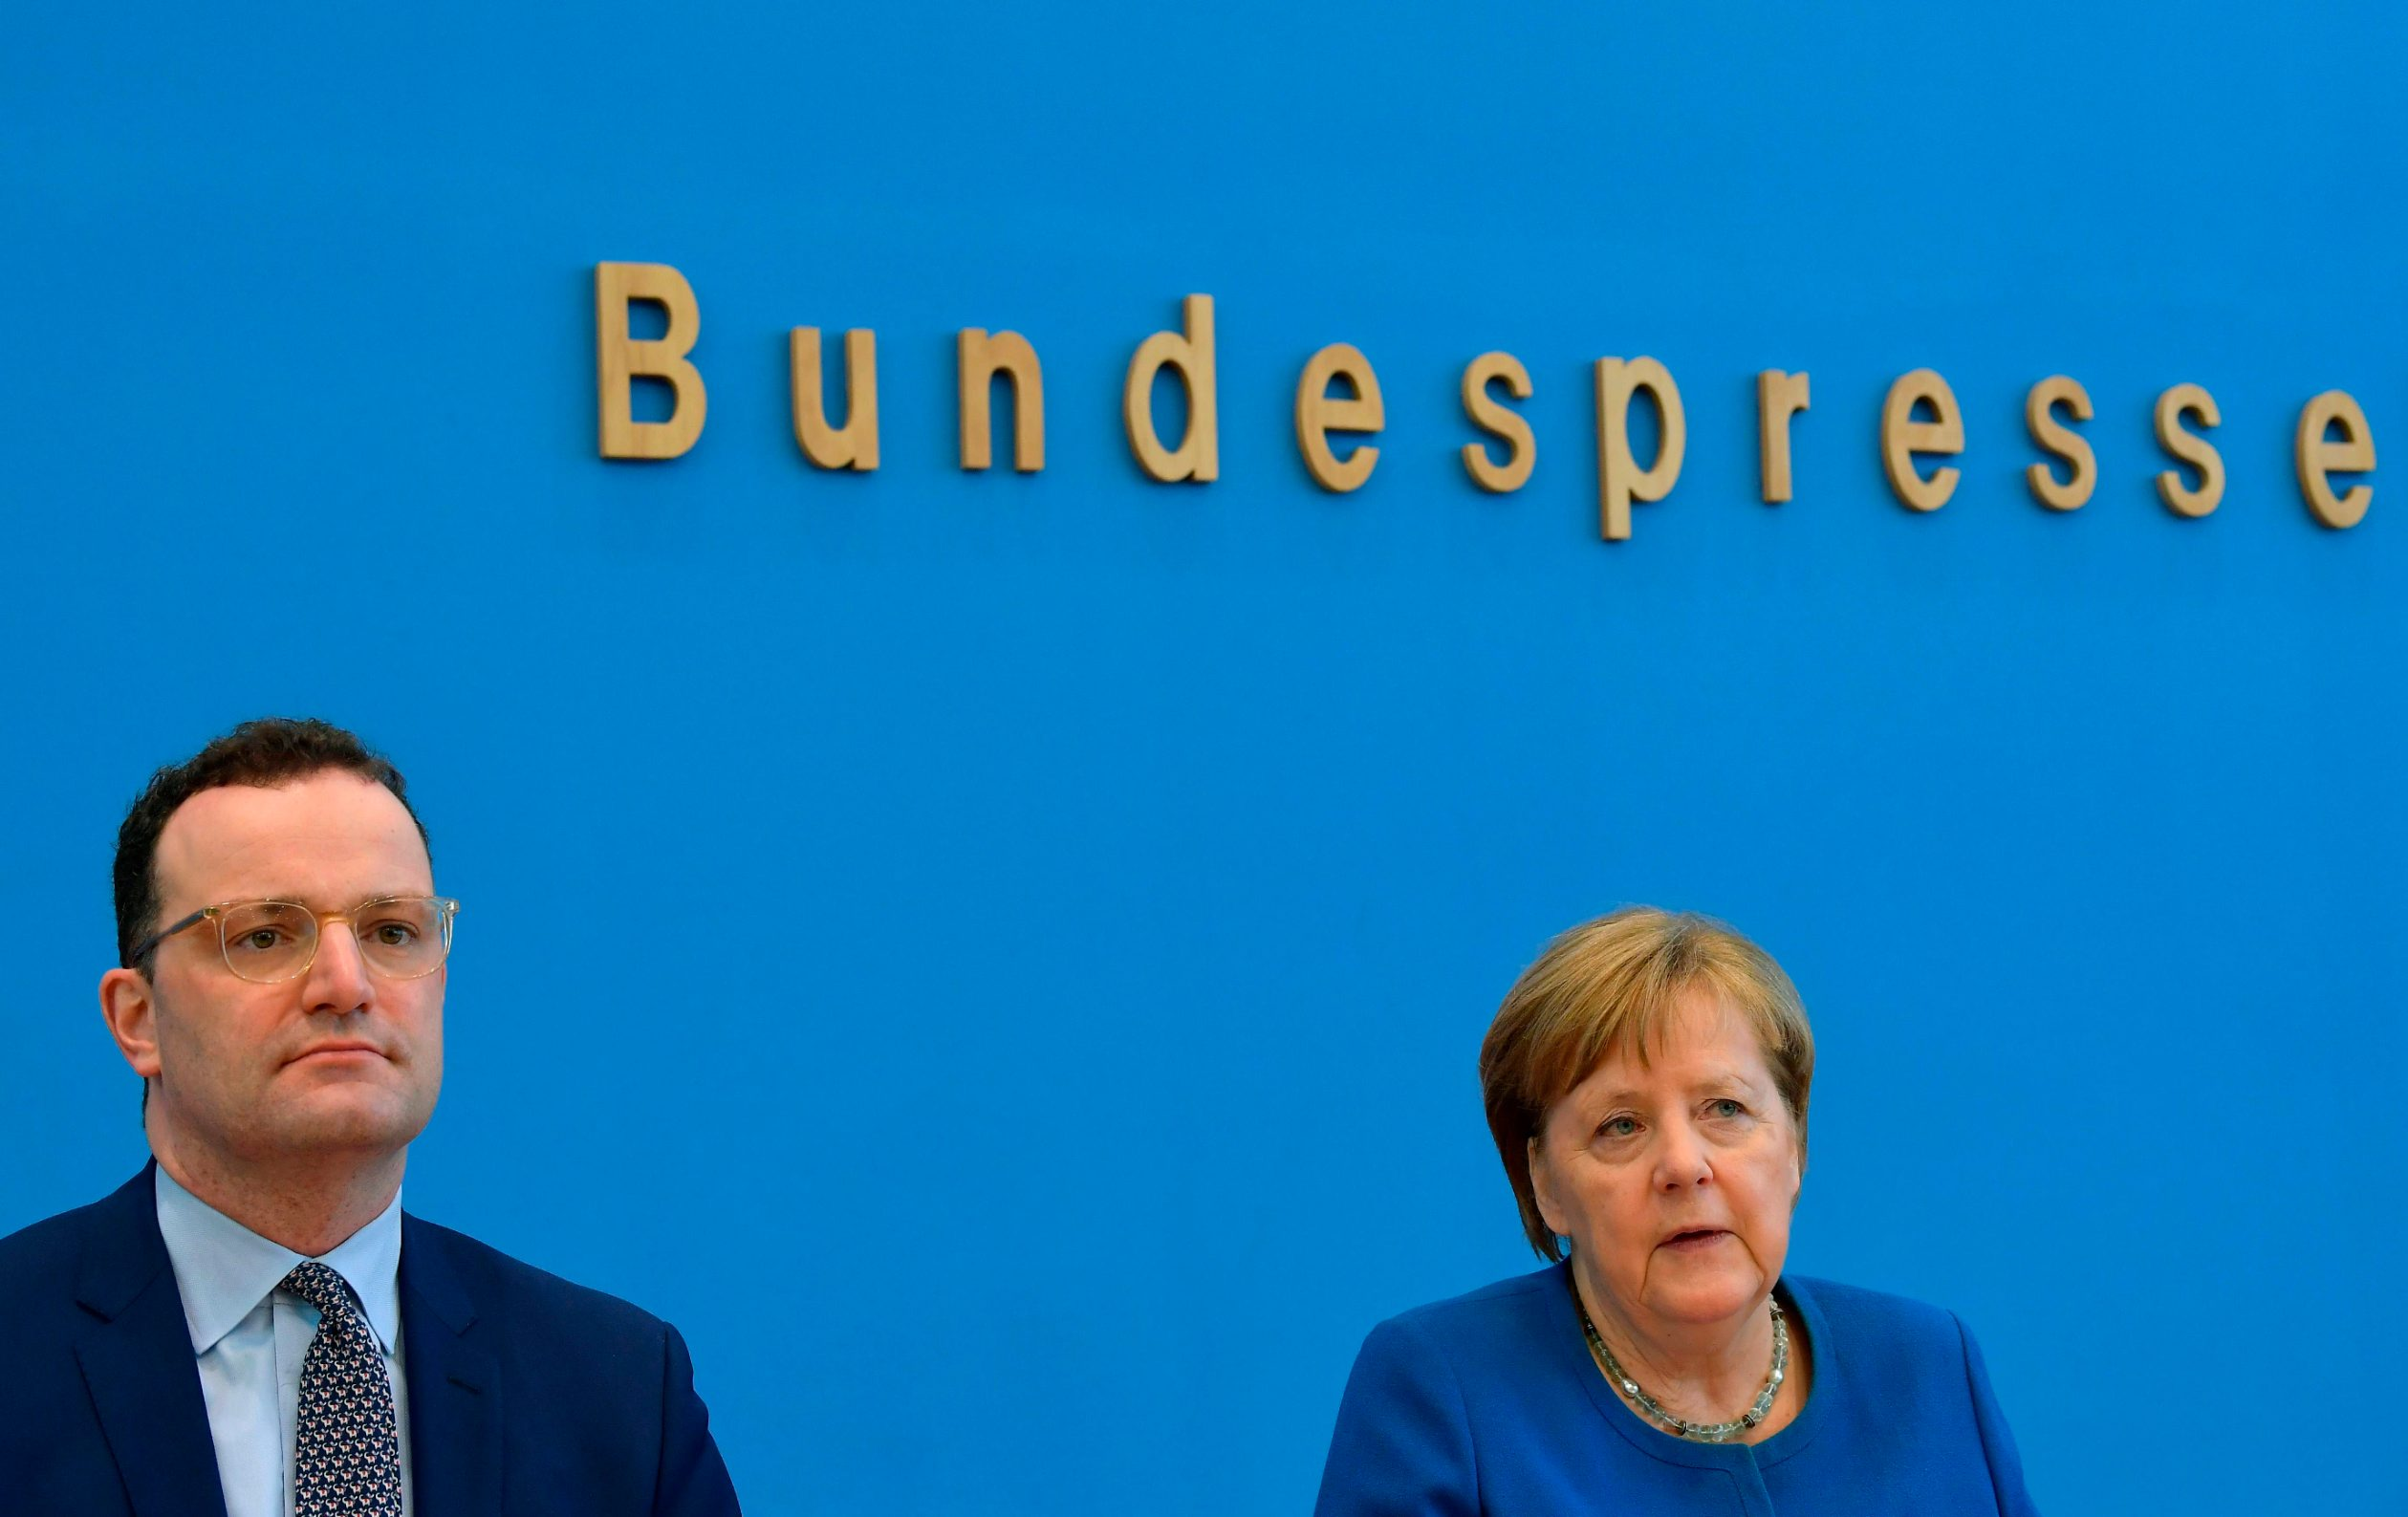 German Health Minister Jens Spahn (L) and German Chancellor Angela Merkel give a press conference on March 11, 2020 in Berlin to comment on the situation of the spread of the novel coronavirus in the country. (Photo by Tobias SCHWARZ / AFP)